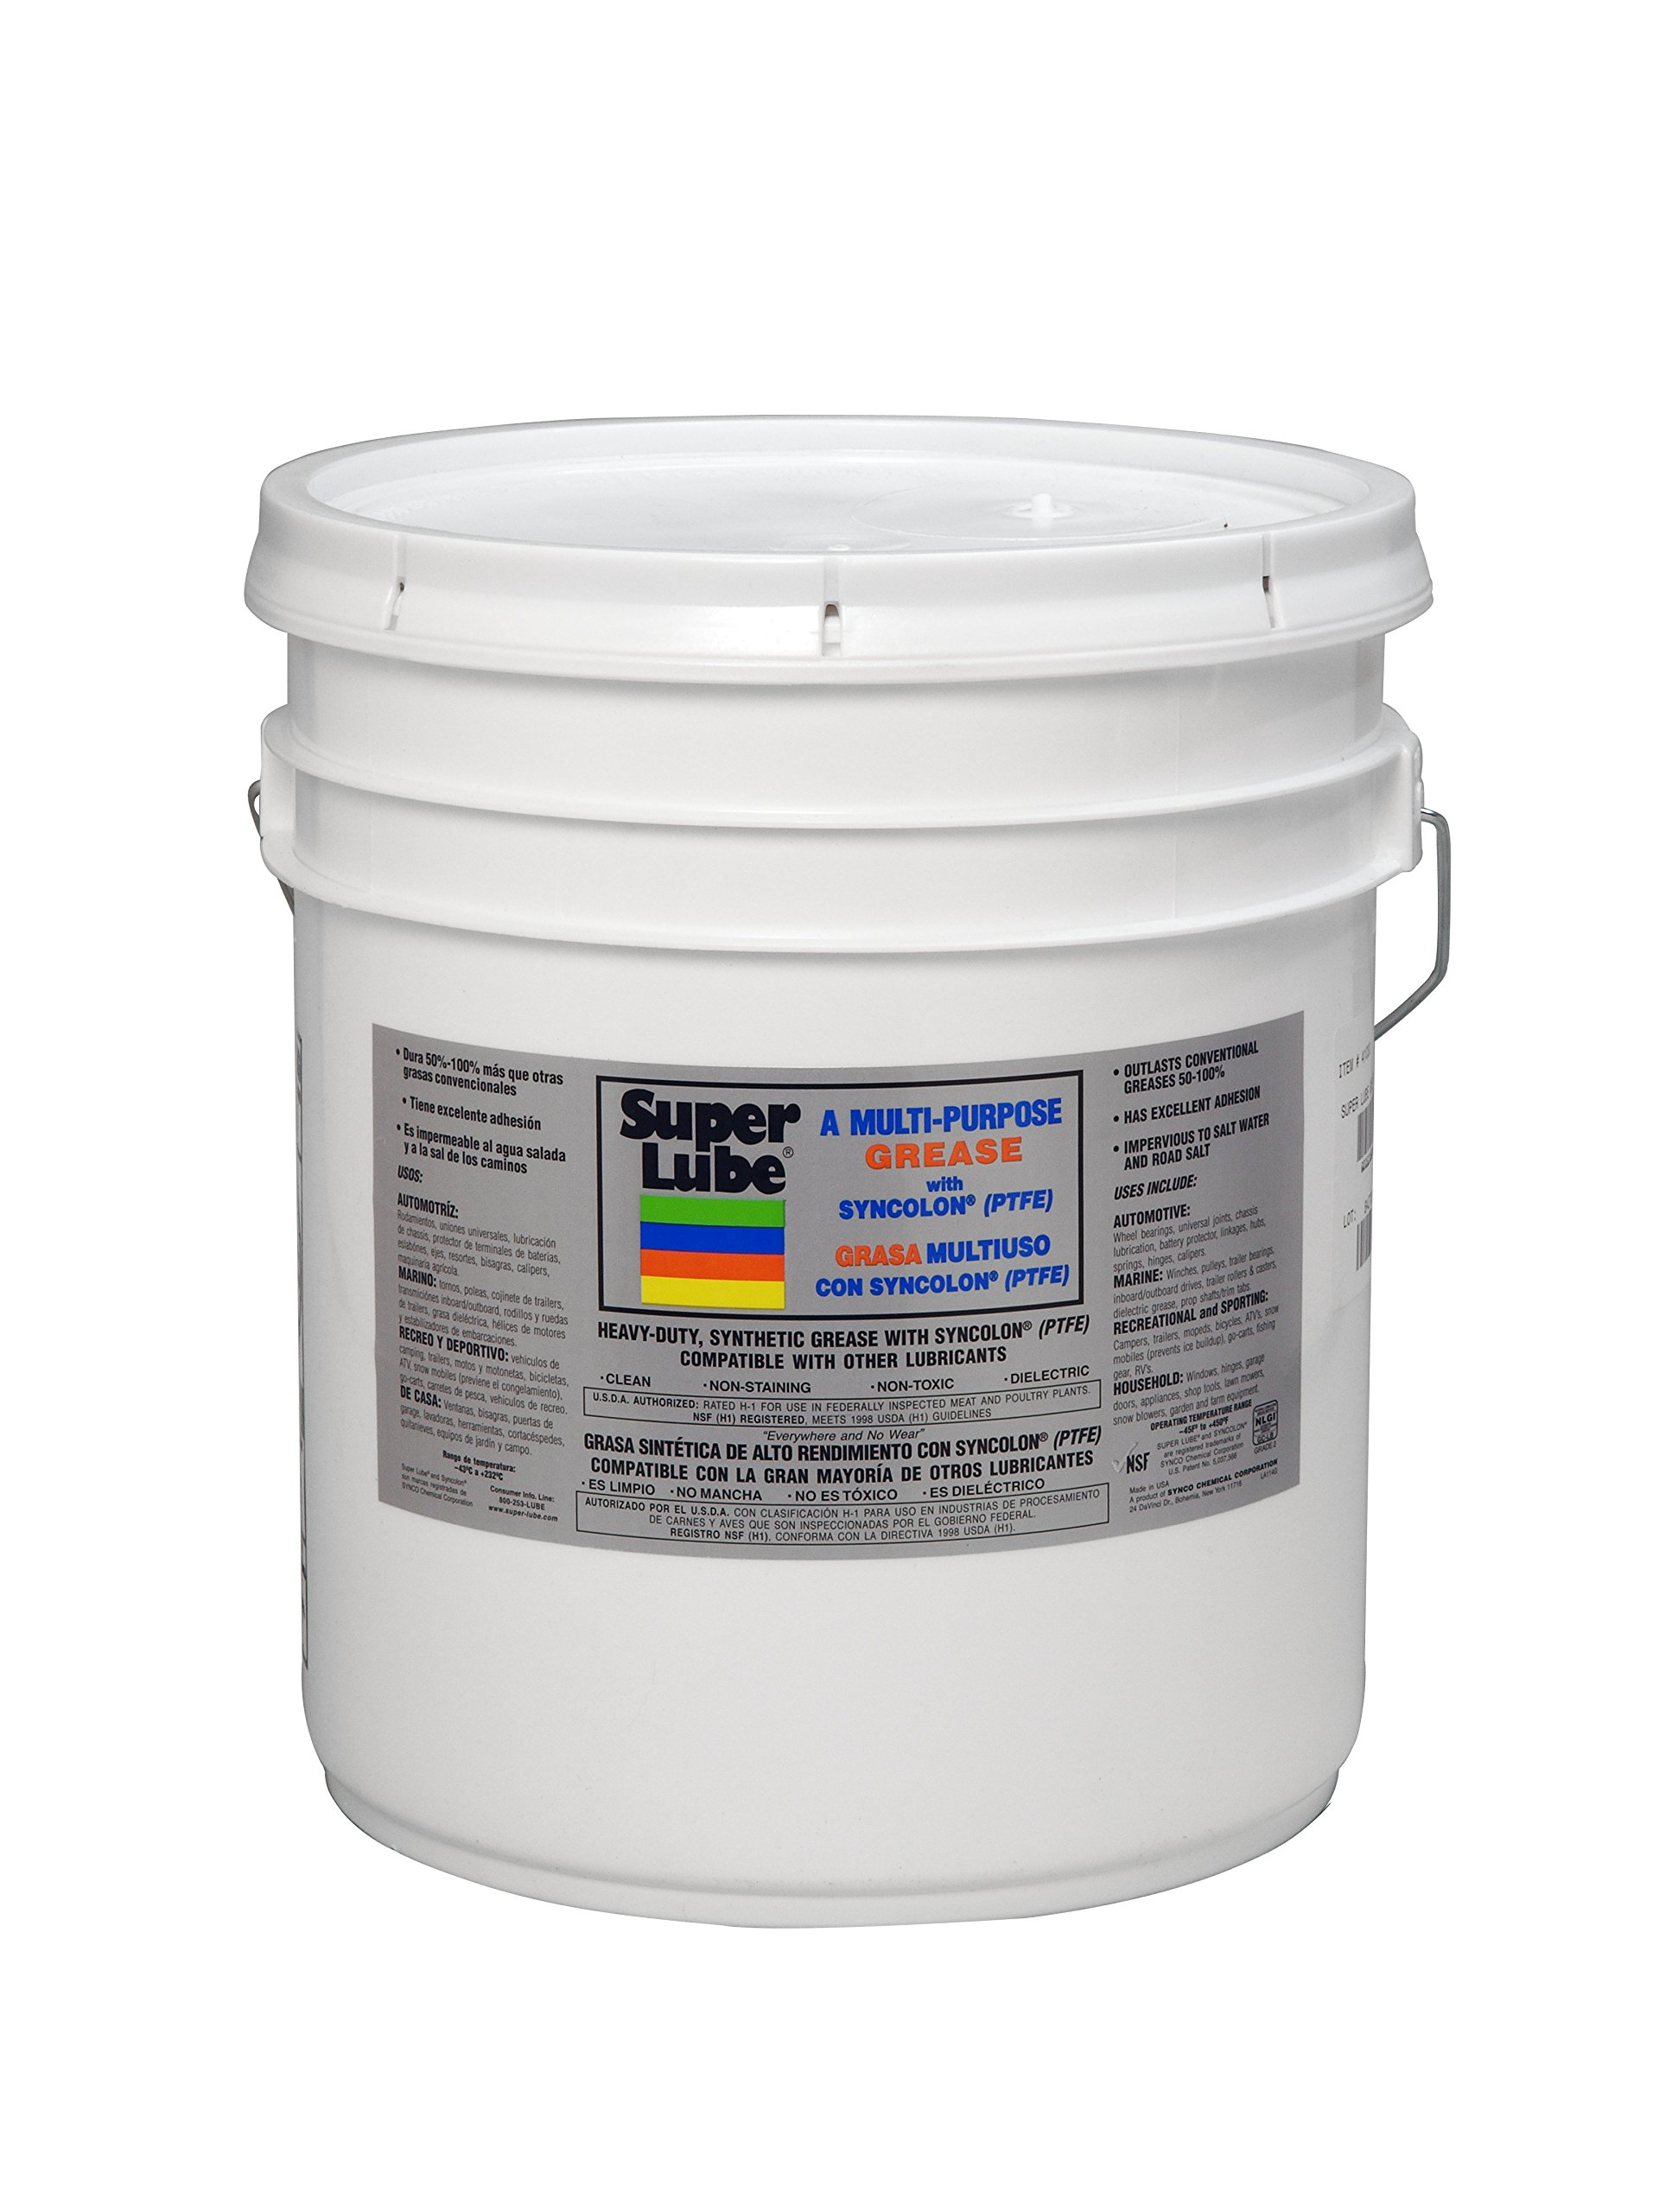 Super Lube 41030 Synthetic Grease (NLGI 2), 30 lb Pail, Translucent White